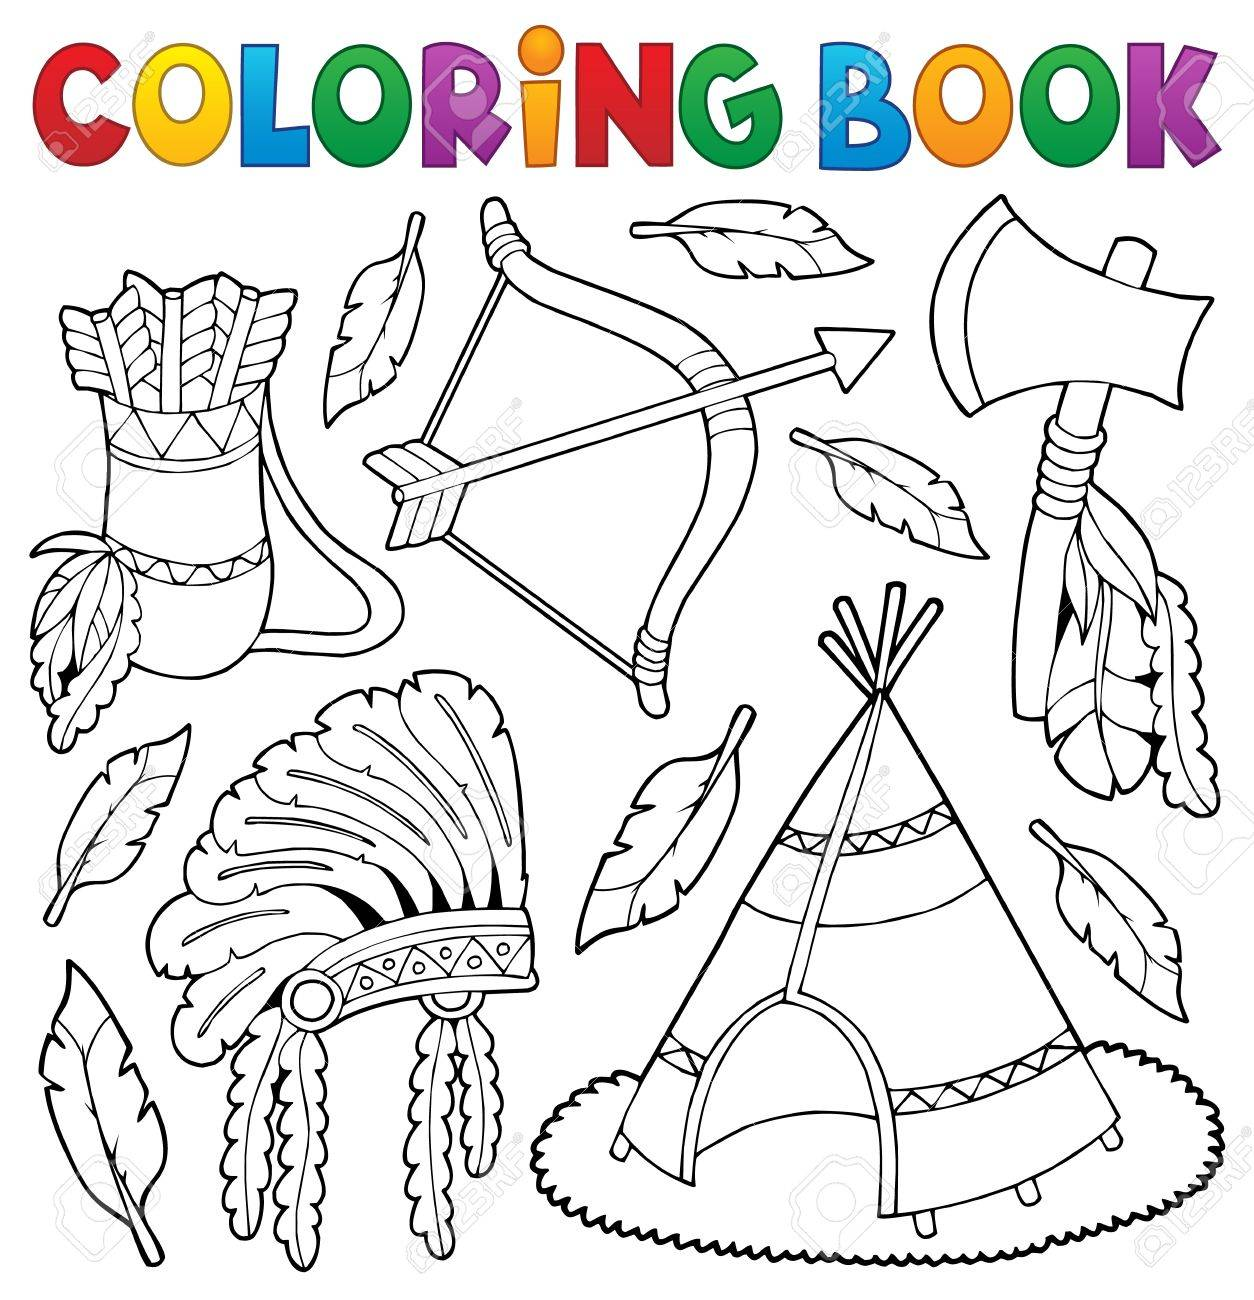 - Coloring Book Native American Theme 1 - Eps10 Vector Illustration